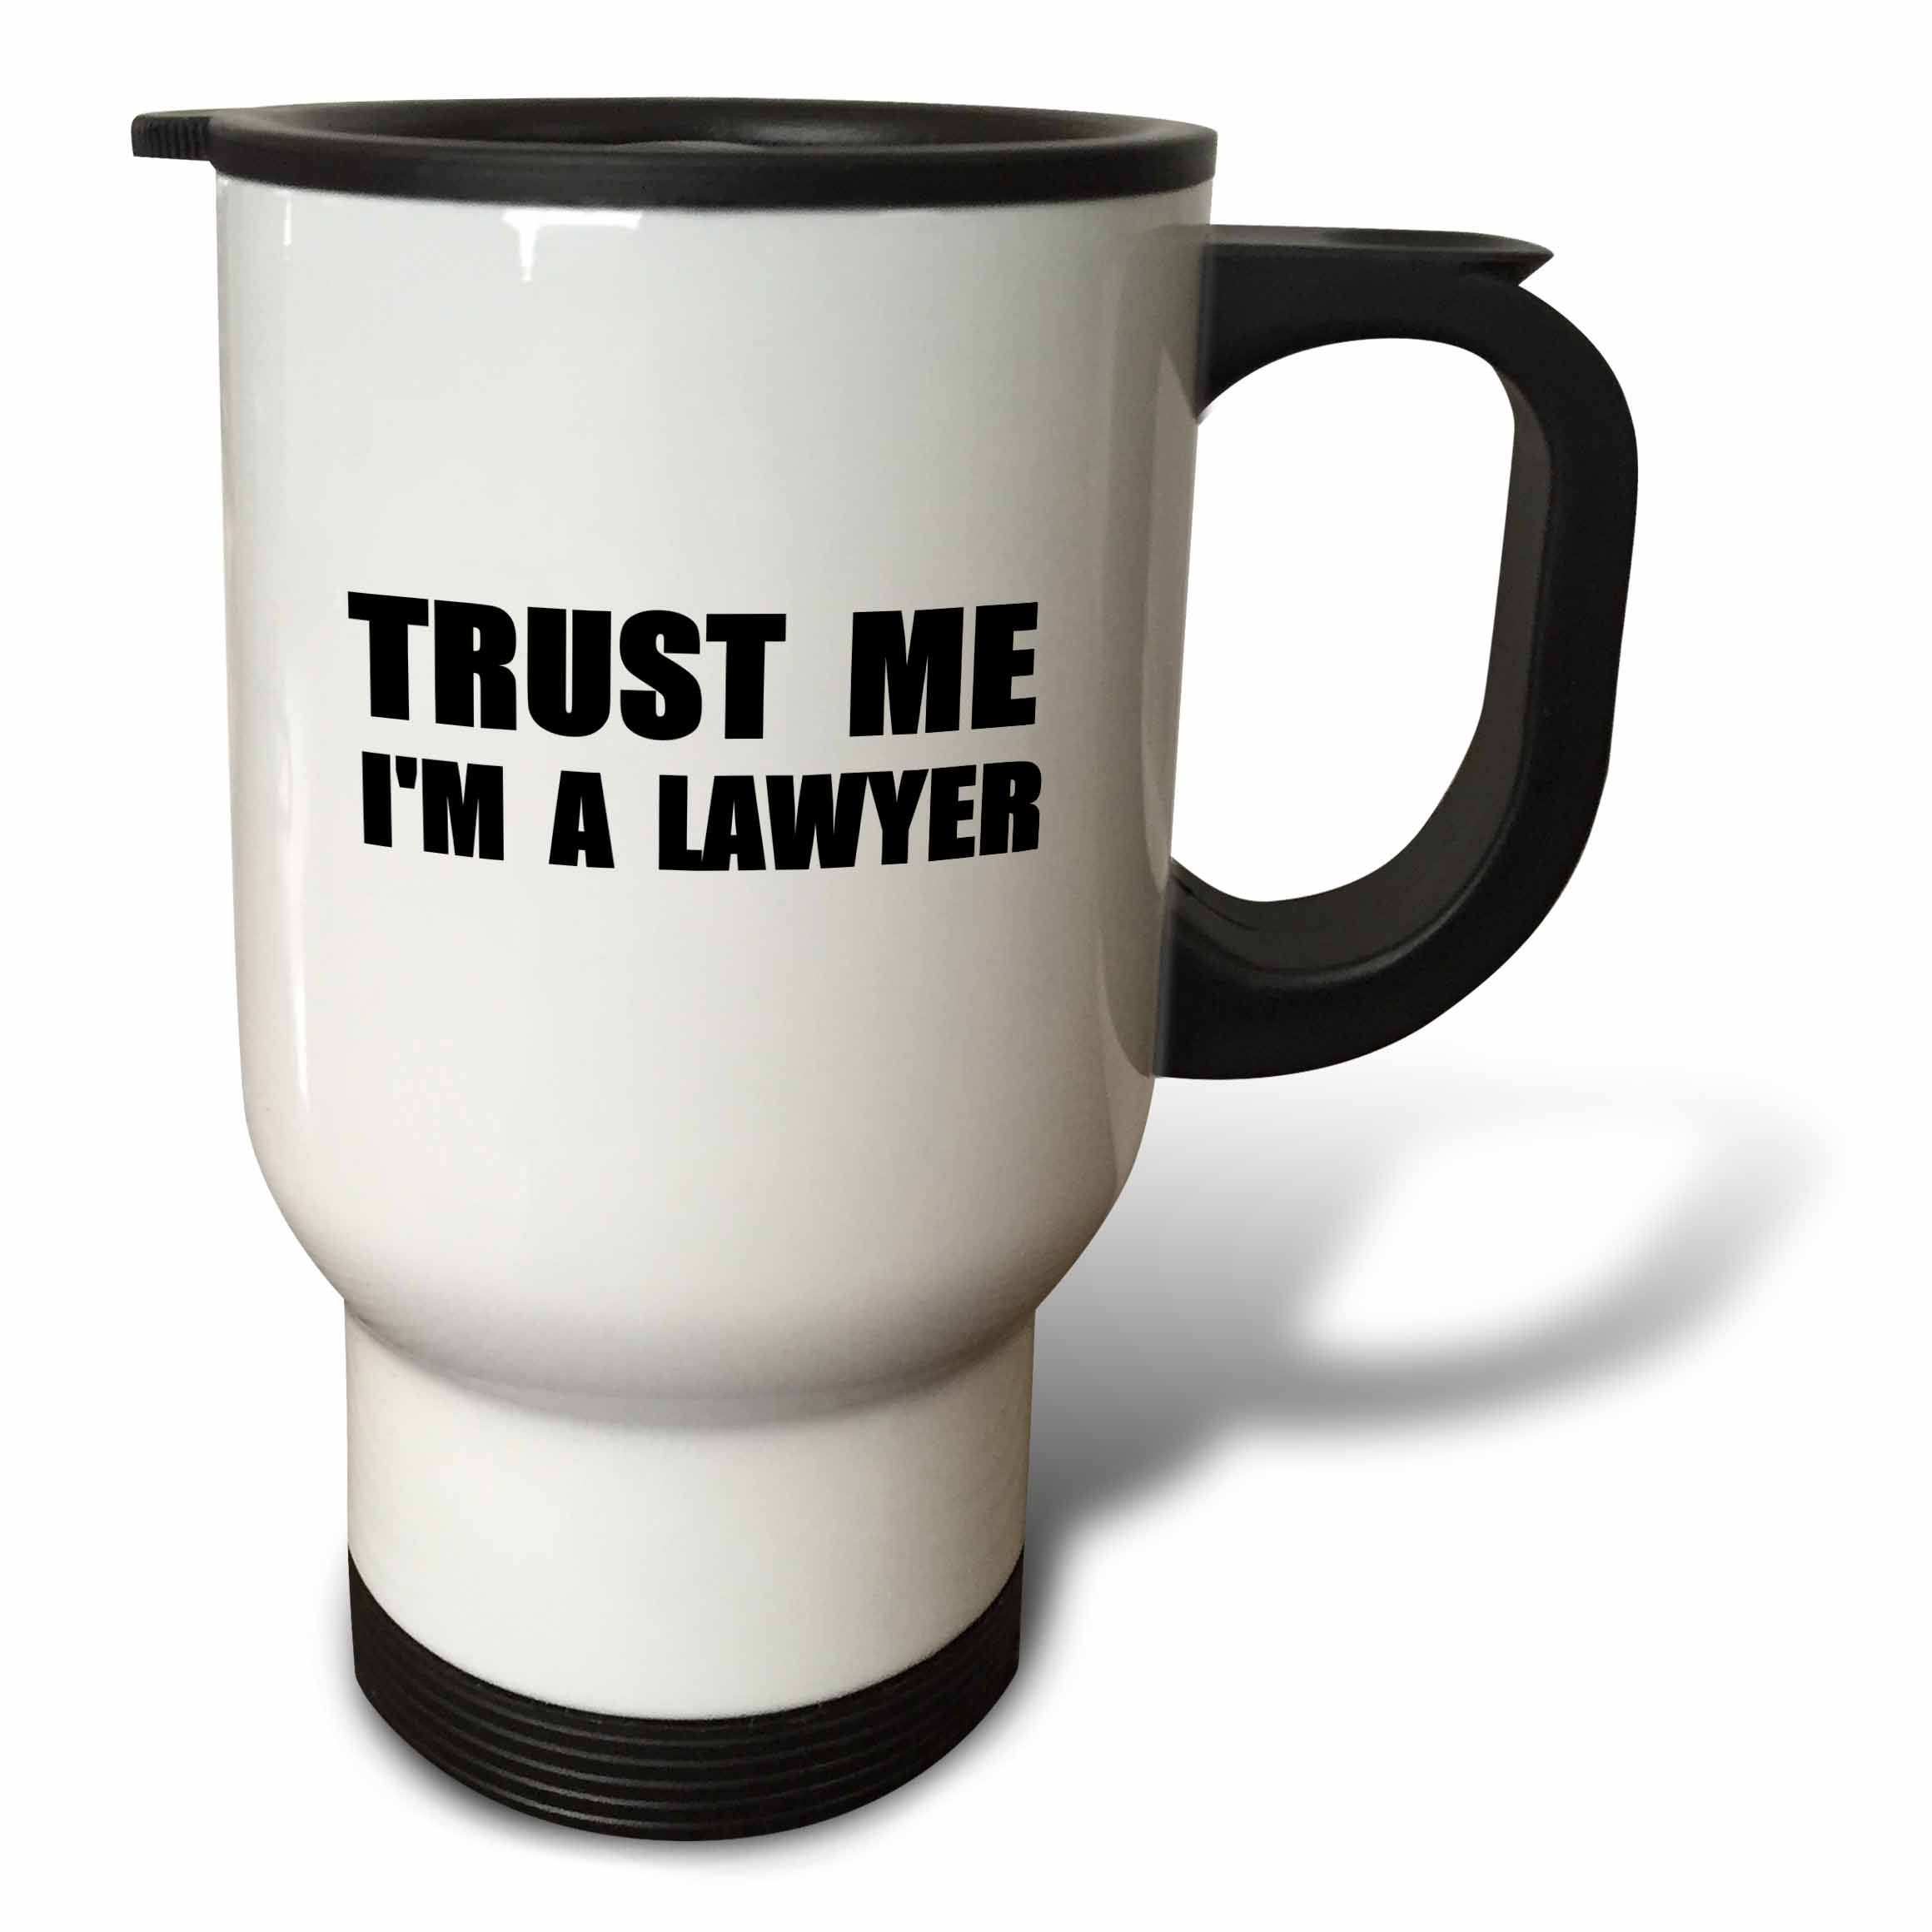 3dRose Trust me Im a Lawyer - fun Law humor - funny job work office gift, Travel Mug, 14oz, Stainless Steel